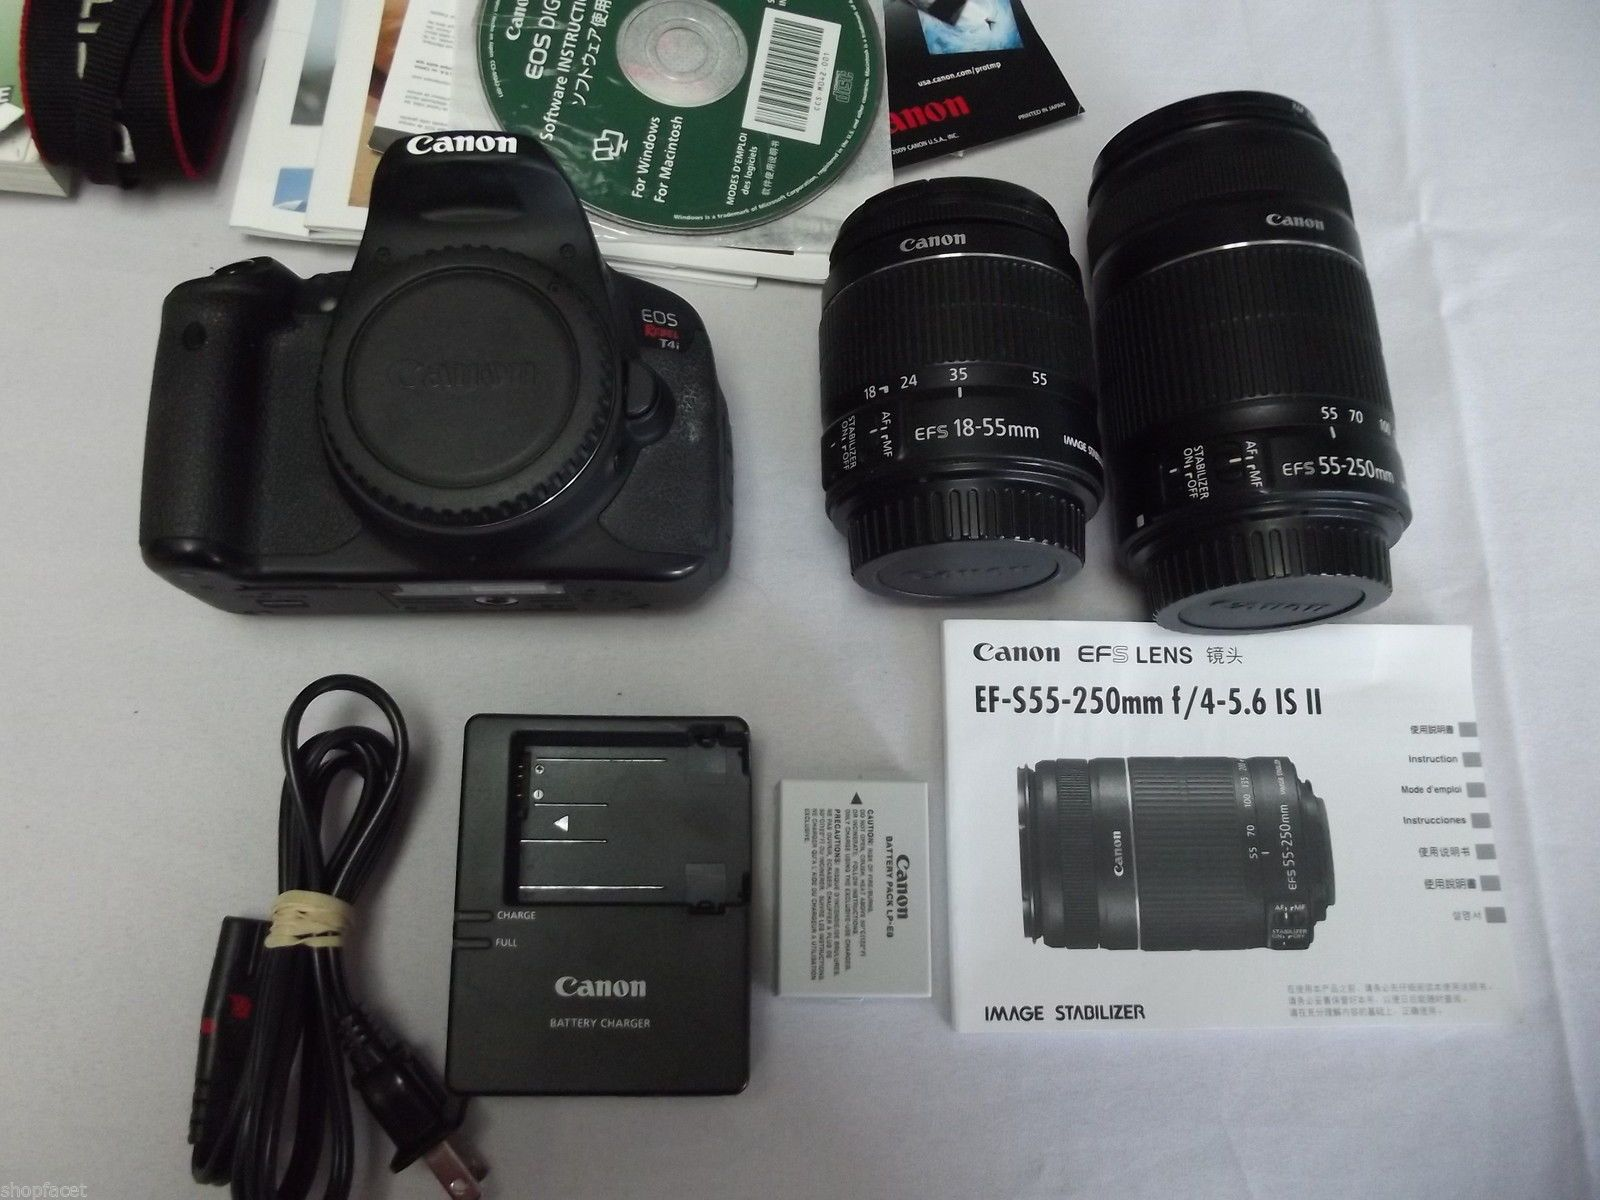 Canon EOS Rebel T4i 650D 18 0 MP Digital SLR Camera Kit EF S with 18-55mm and 55-250mm lens.